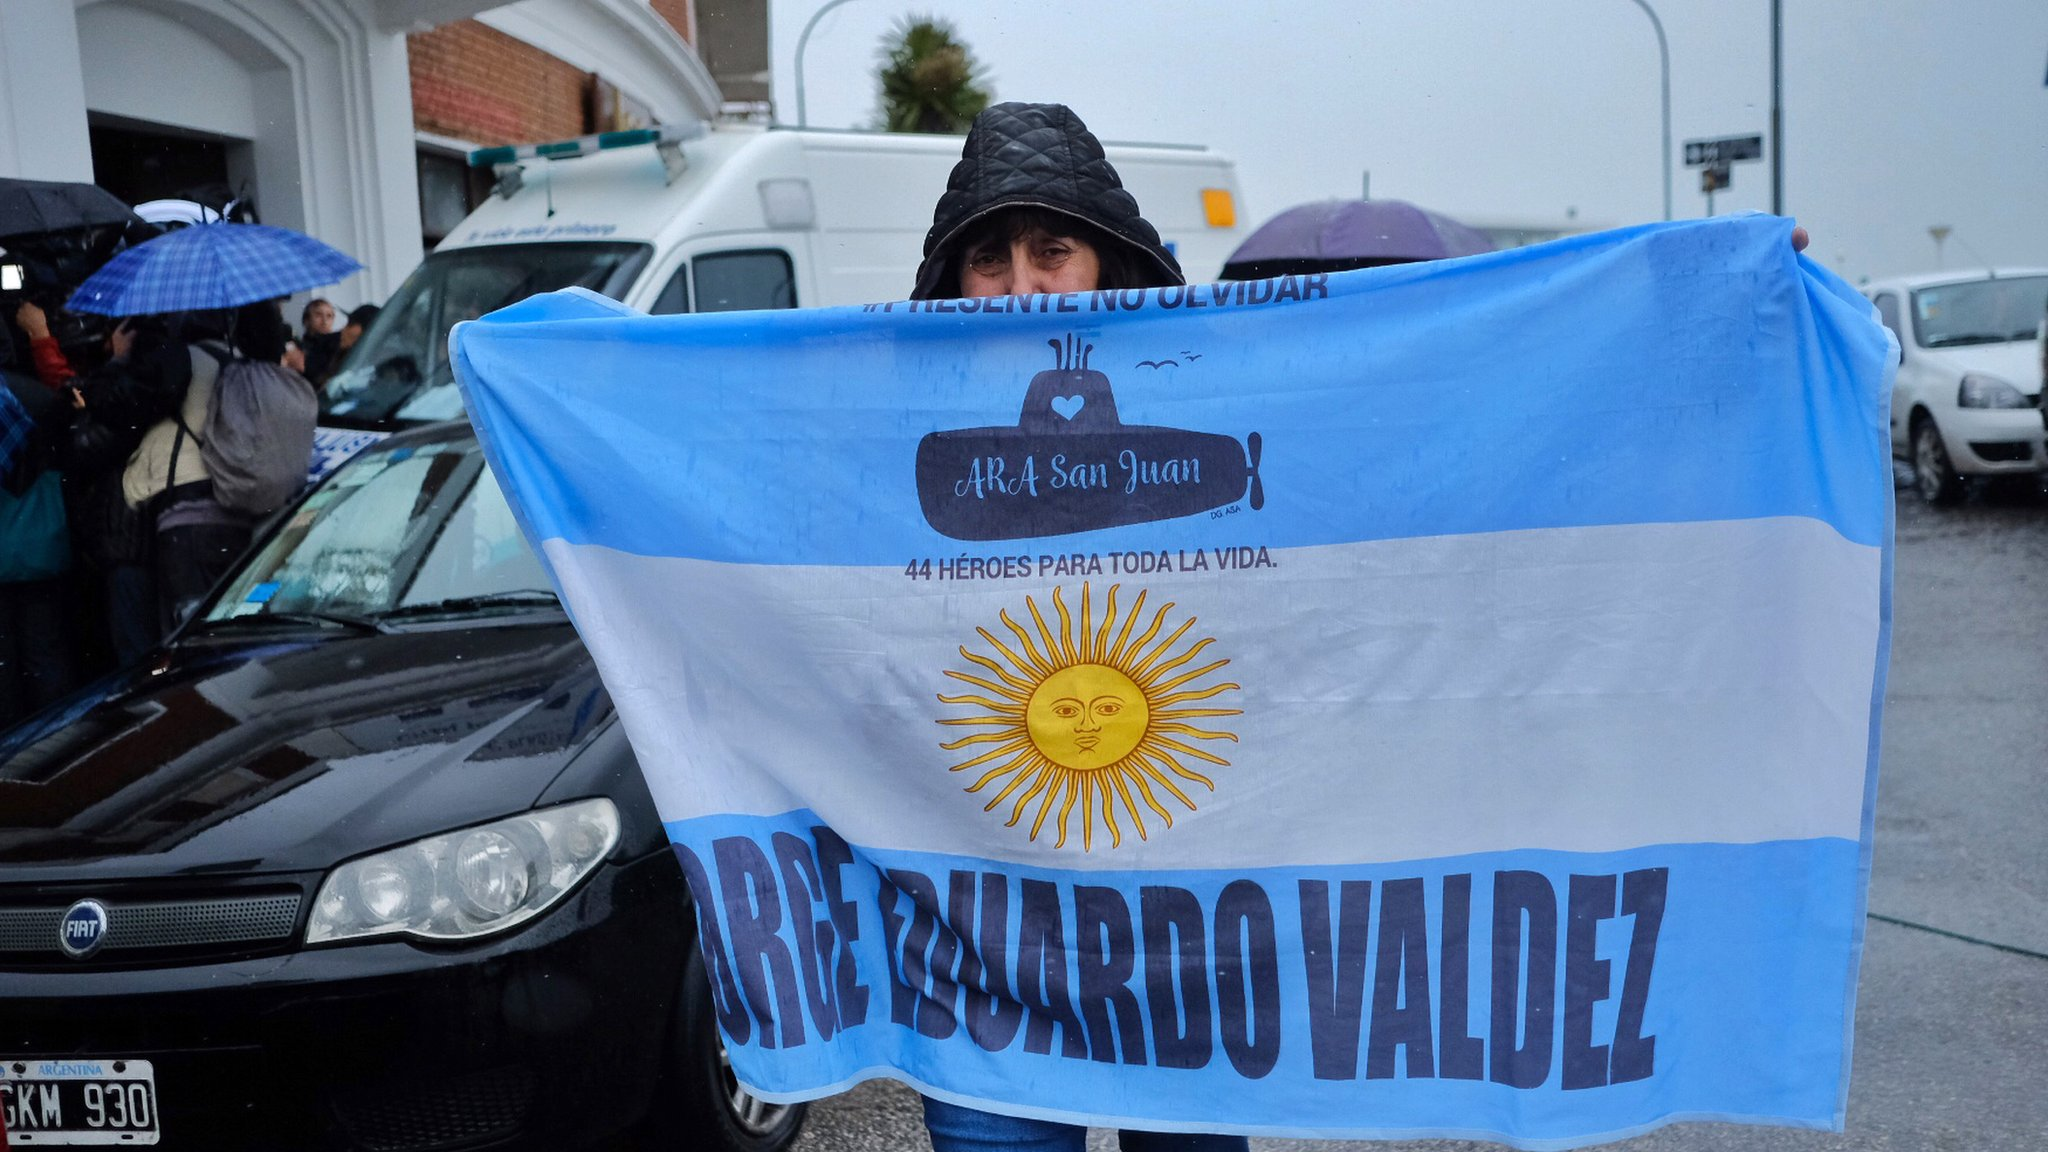 Argentine submarine: Government 'lacks means' to raise lost vessel